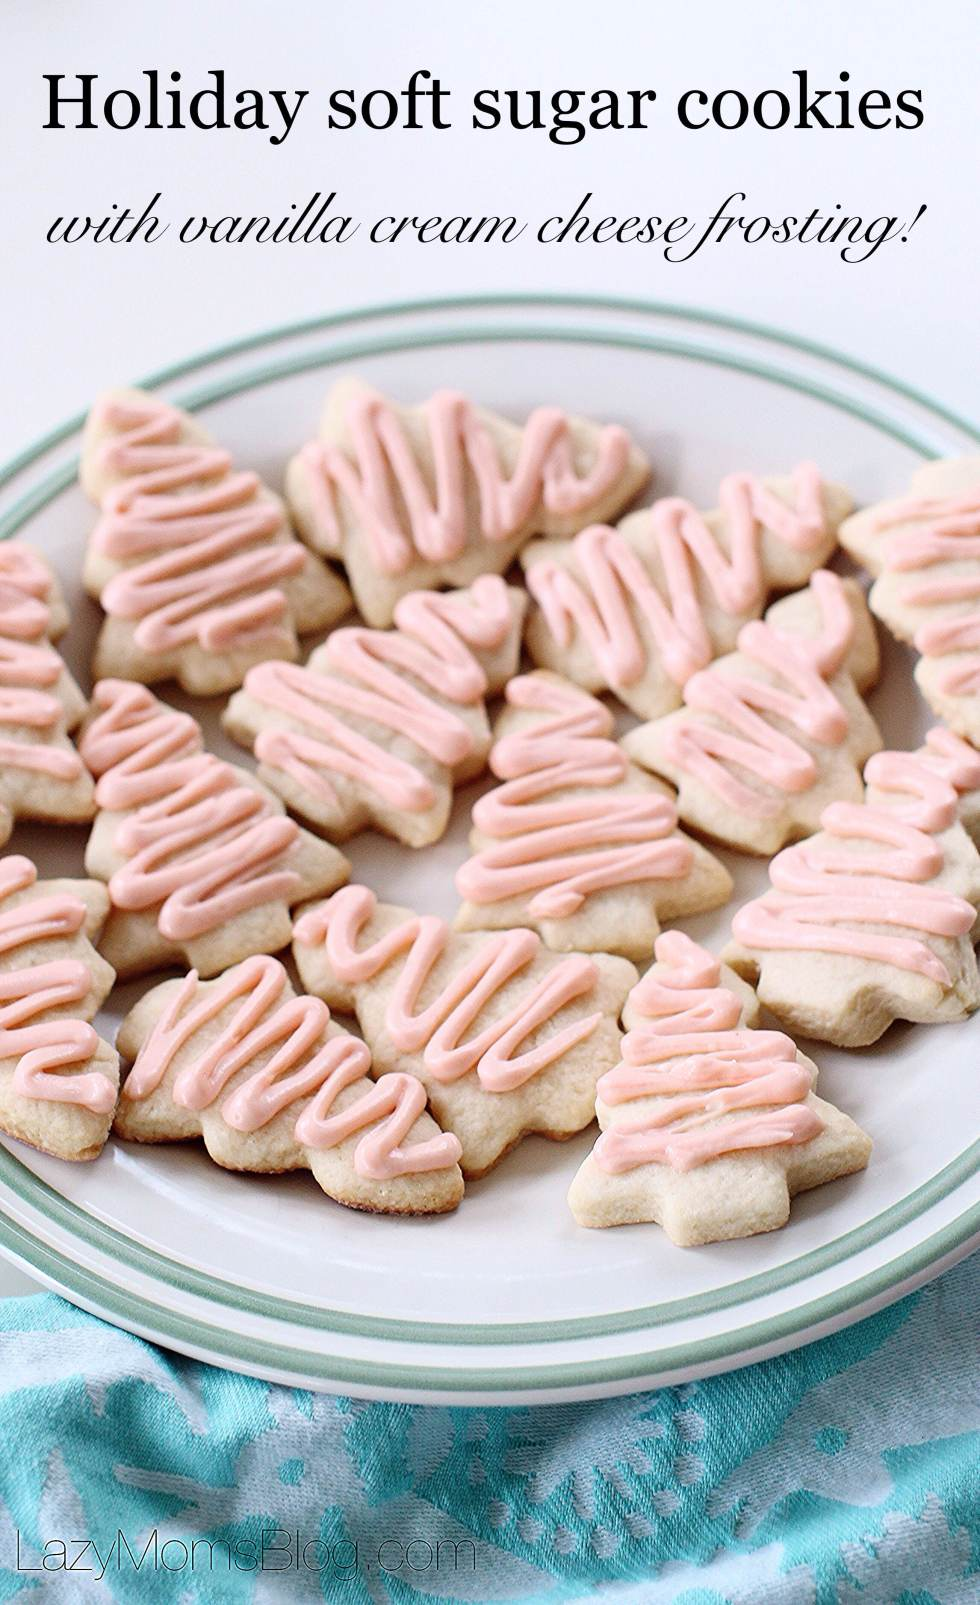 Easy and puffy soft sugar cookies recipe , so delicious and uncomplicated!  And once frosted with this vanilla cream cheese frosting, they simply melt  in your mouth!